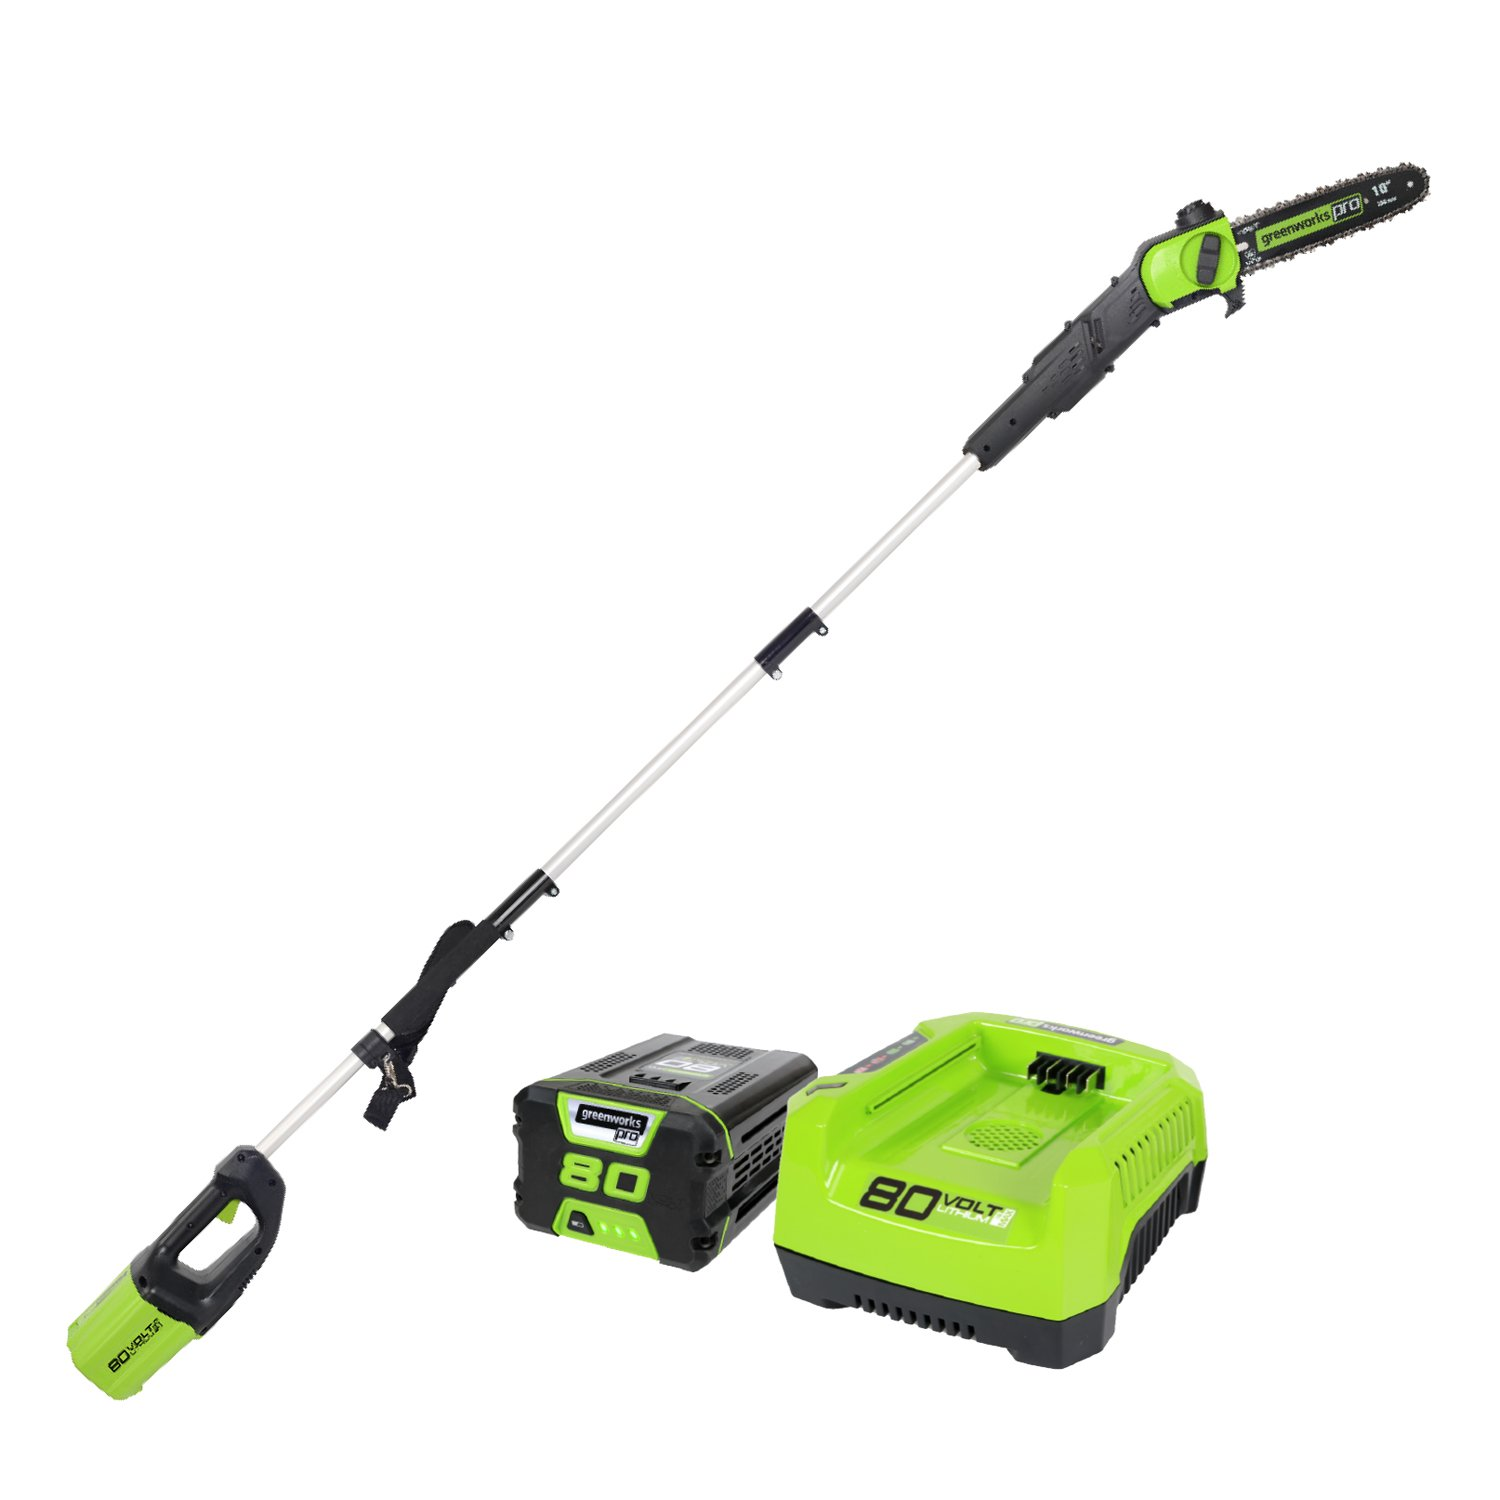 Greenworks best battery powered pole saw